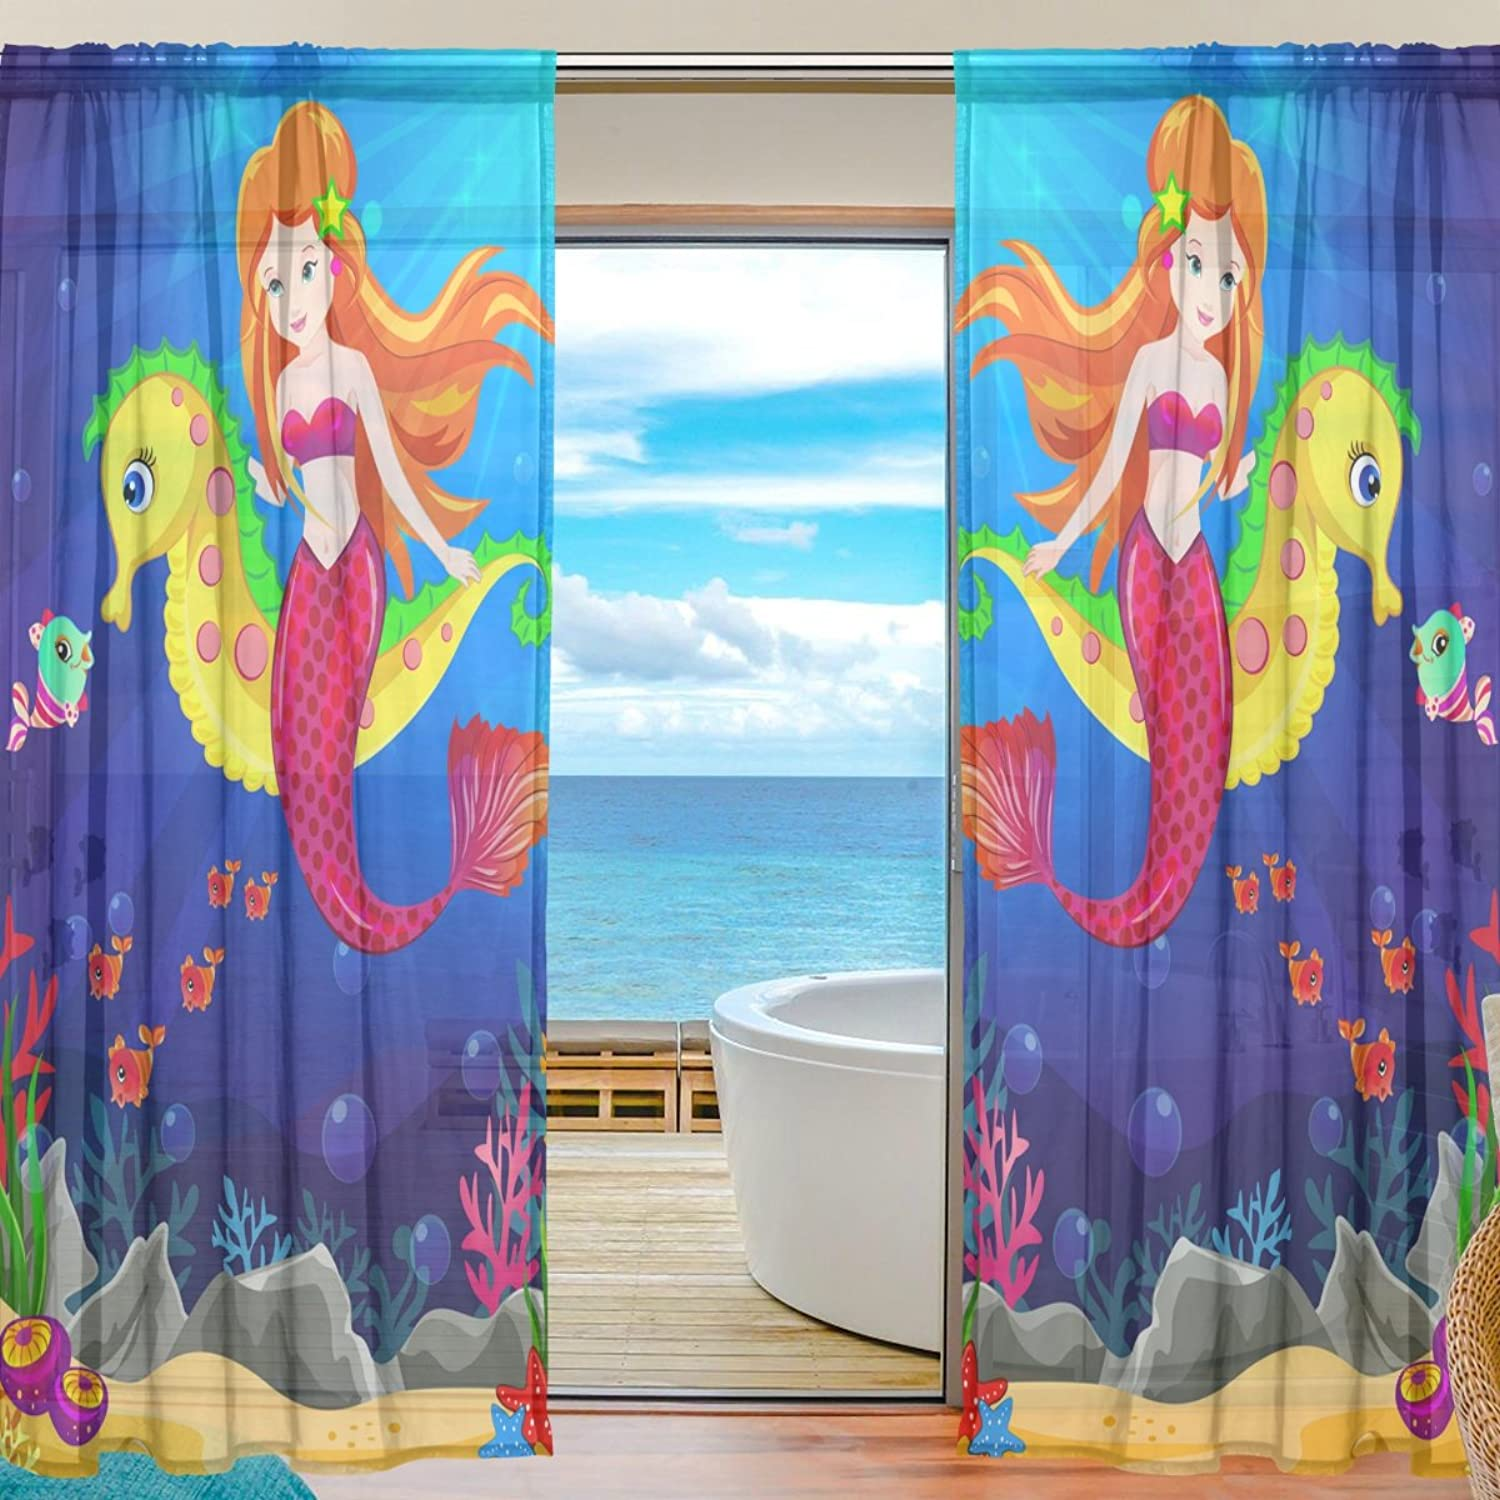 Vantaso Sheer Curtains 78 inch Beauty Red Mermaid Ride On golden Seahorse in bluee for Kids Girls Bedroom Living Room Window Decorative 2 Panels